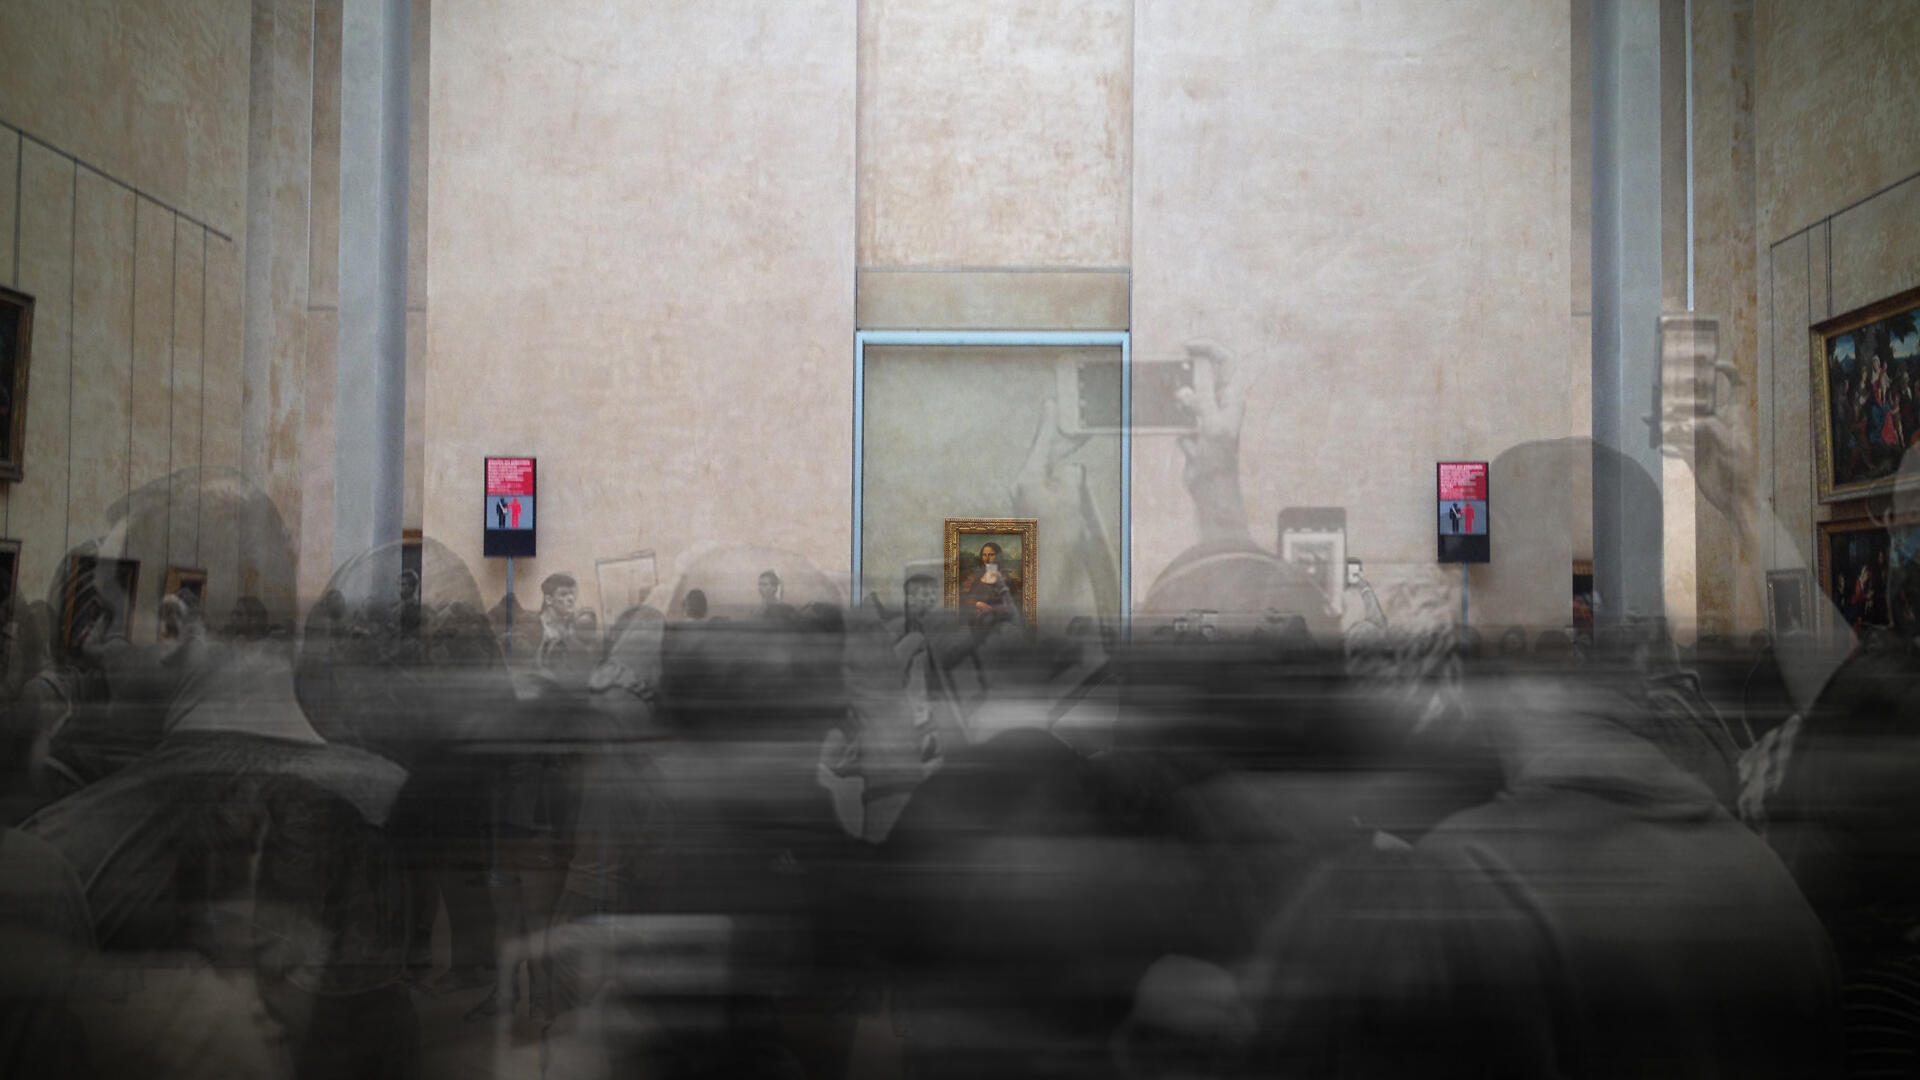 The VR experience, Mona Lisa: Beyond the Glass, contains a nod to the usual experience of viewing Leonardo da Vinci's famous painting in the Louvre's crowded Denon wing.